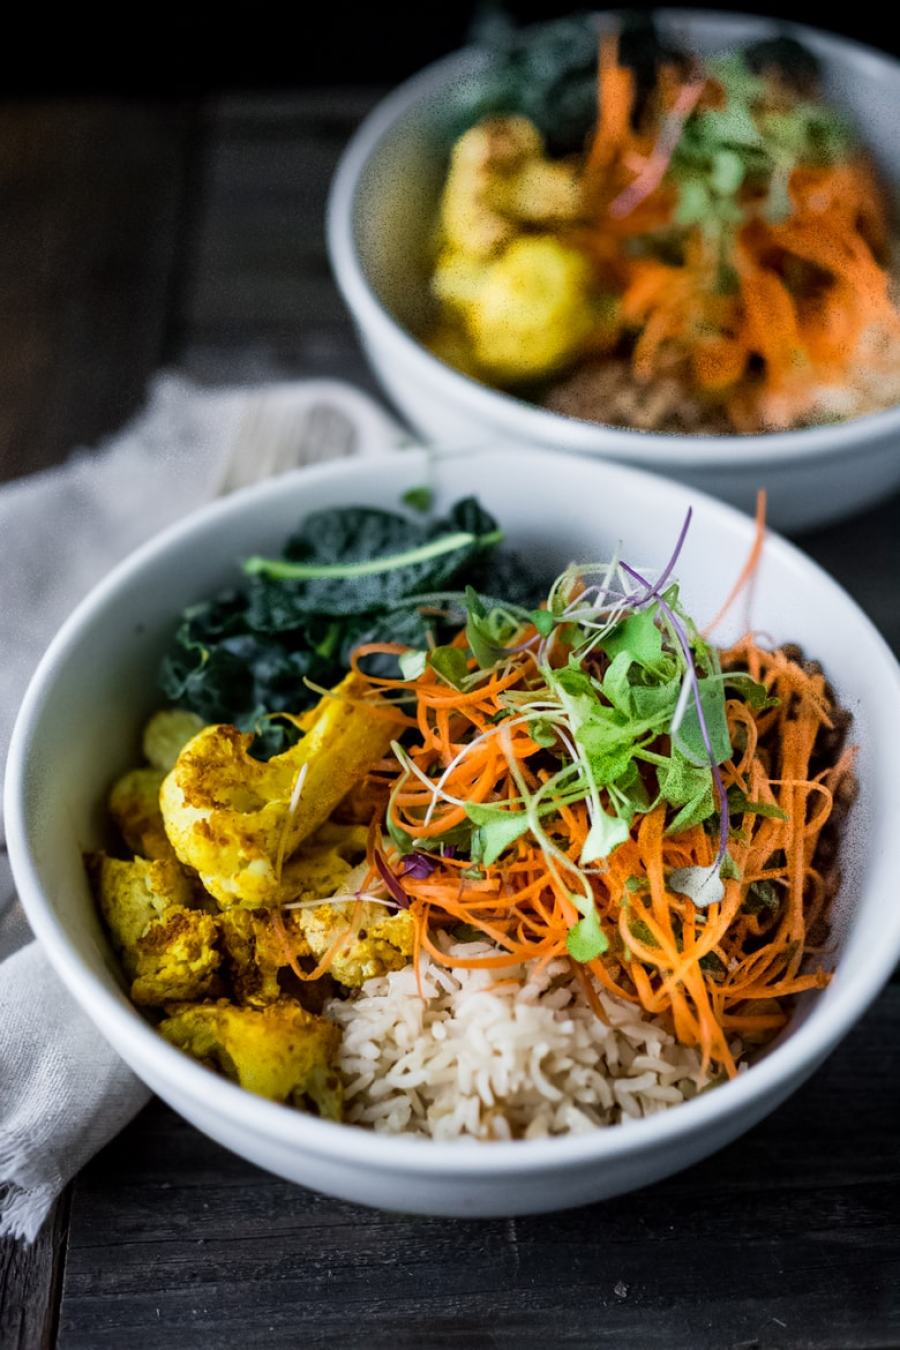 Fall Nourish Bowl- Curried cauliflower, lentils, brown rice, kale and a refreshing Carrot Slaw topped with Turmeric vinaigrette. VEGAN & Gluten-free. | www.feastingathome.com